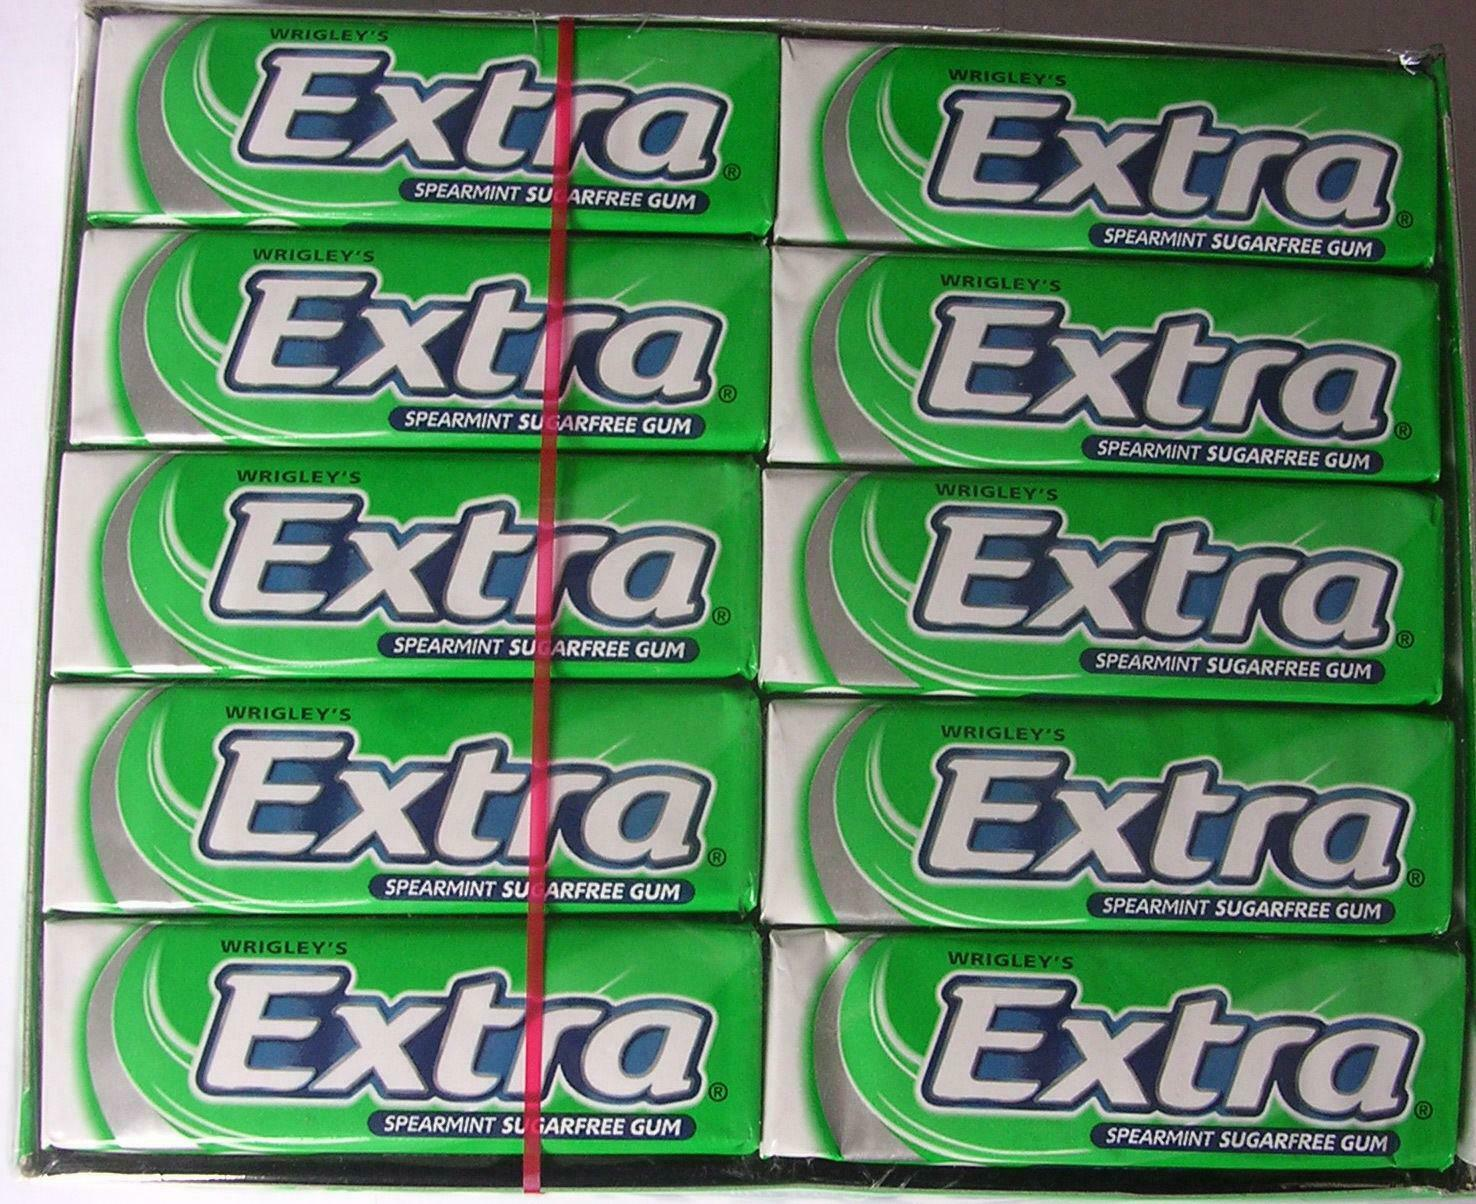 30 Extra Spearmint Chewing Gum